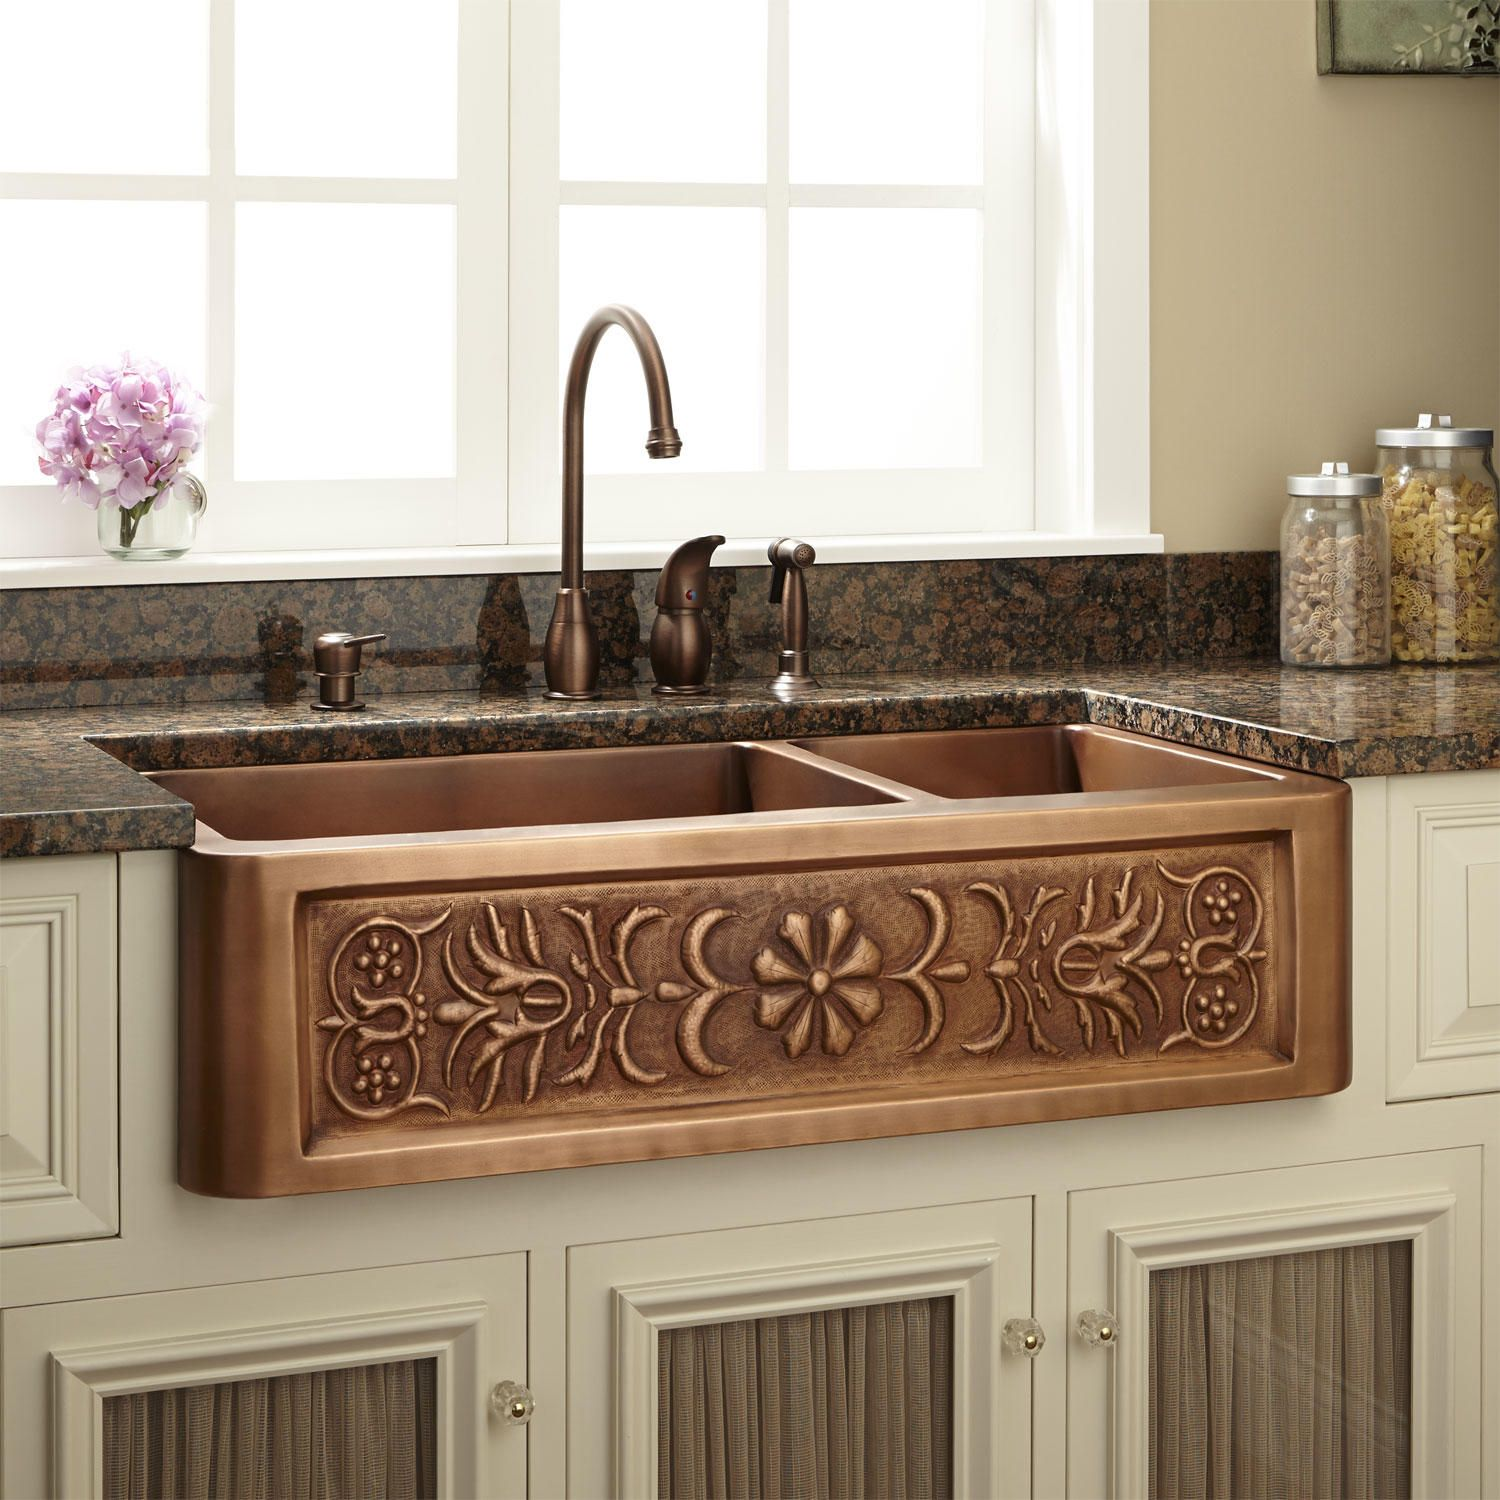 33 Flower Motif 60 40 Offset Double Bowl Copper Farmhouse Sink In